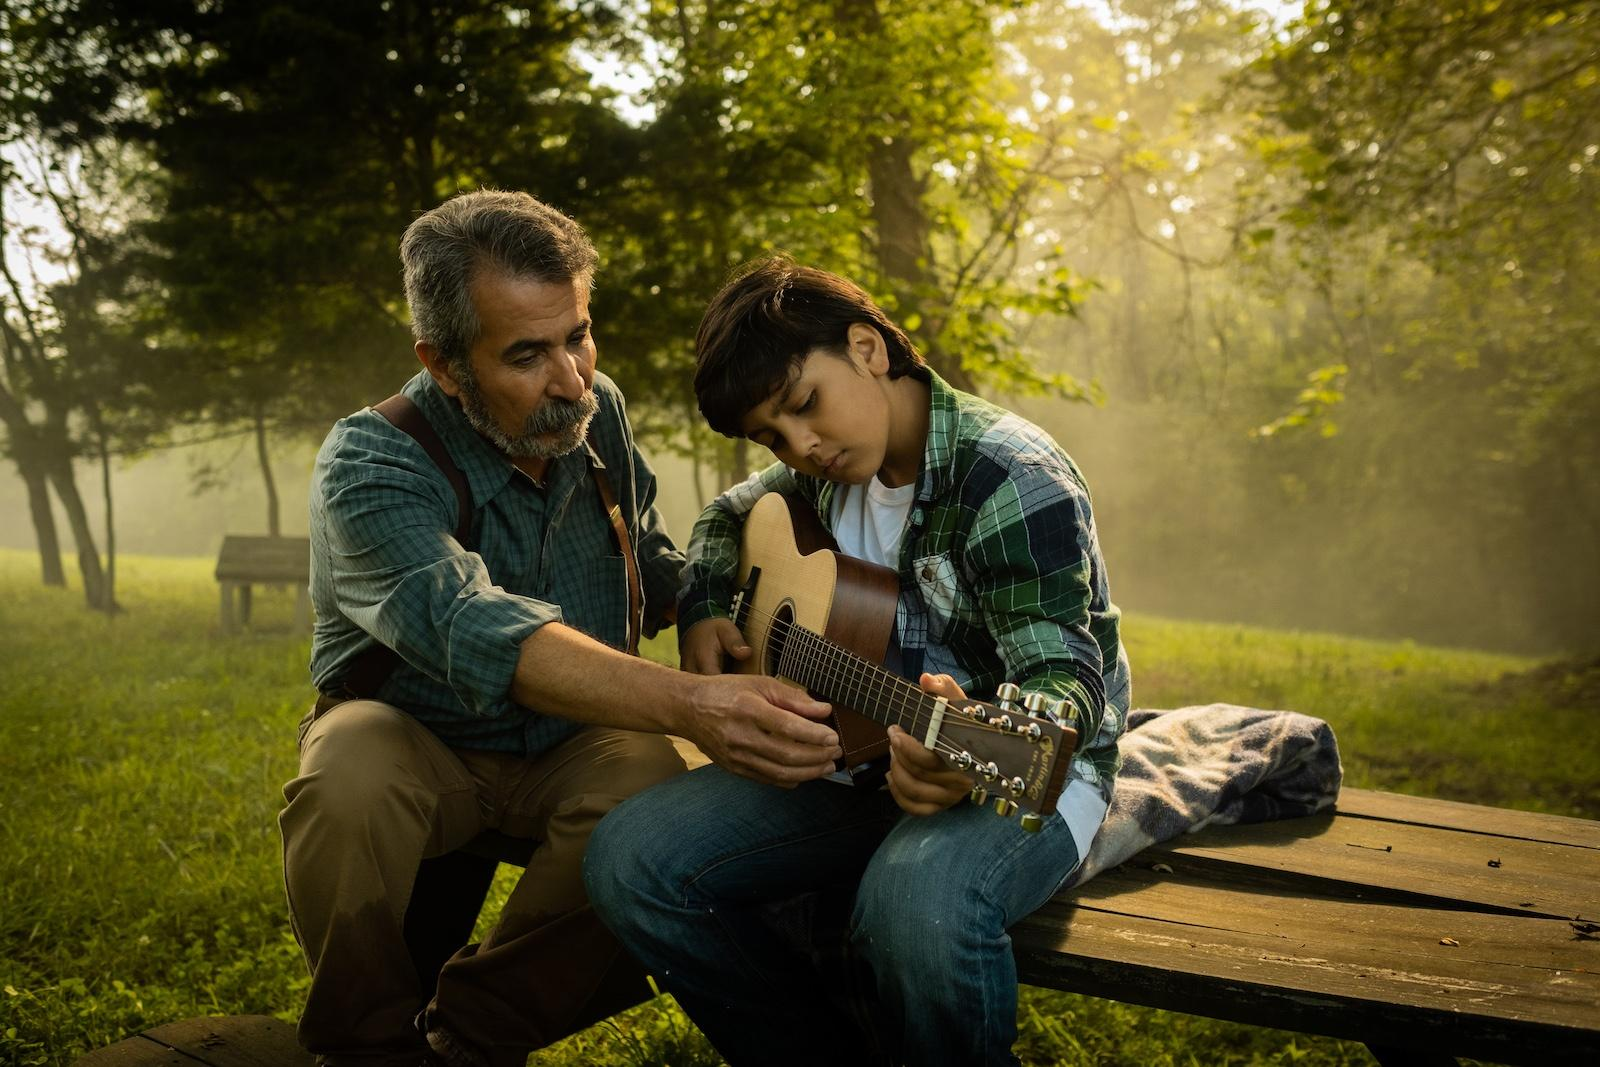 Man instructs child on how to play guitar